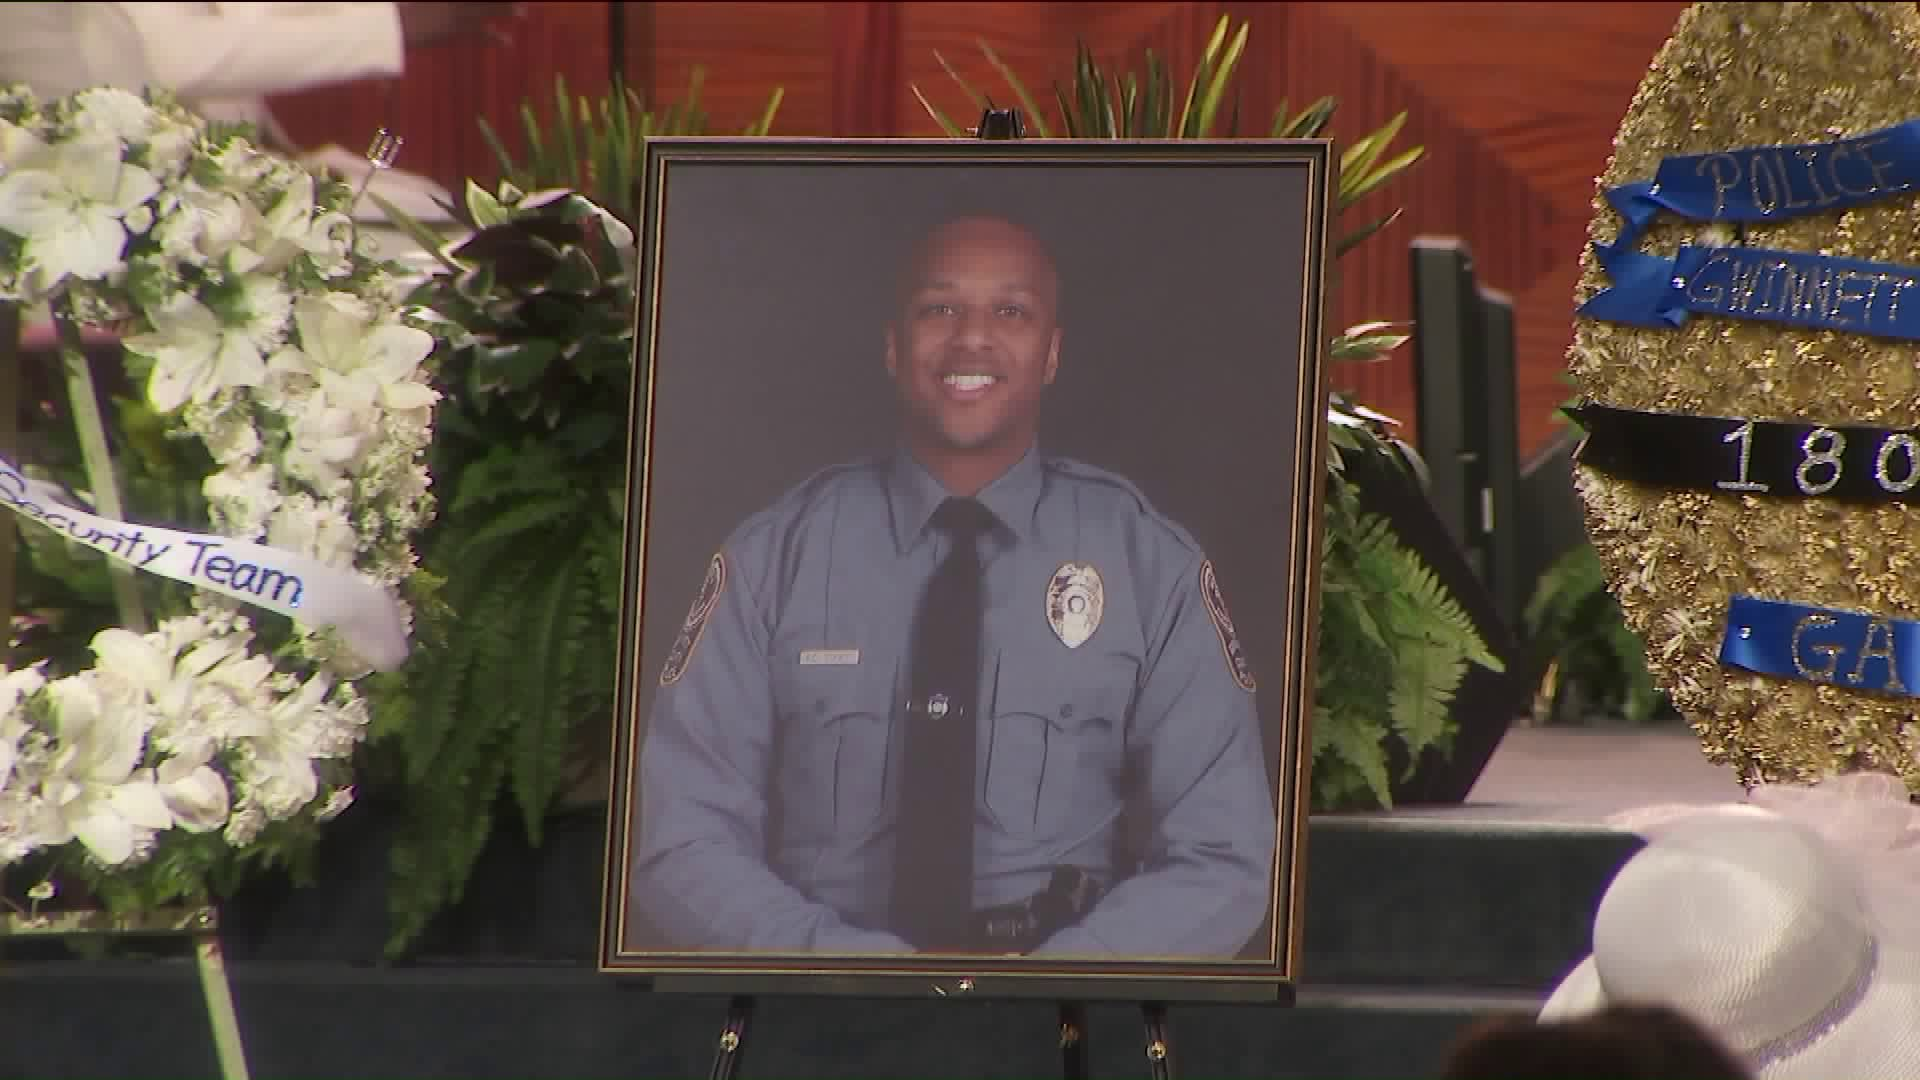 Mourners paid their respects to slain Georgia police officer Antwan Toney, a Southern California native, at a service in Gardena on Nov. 3, 2018.